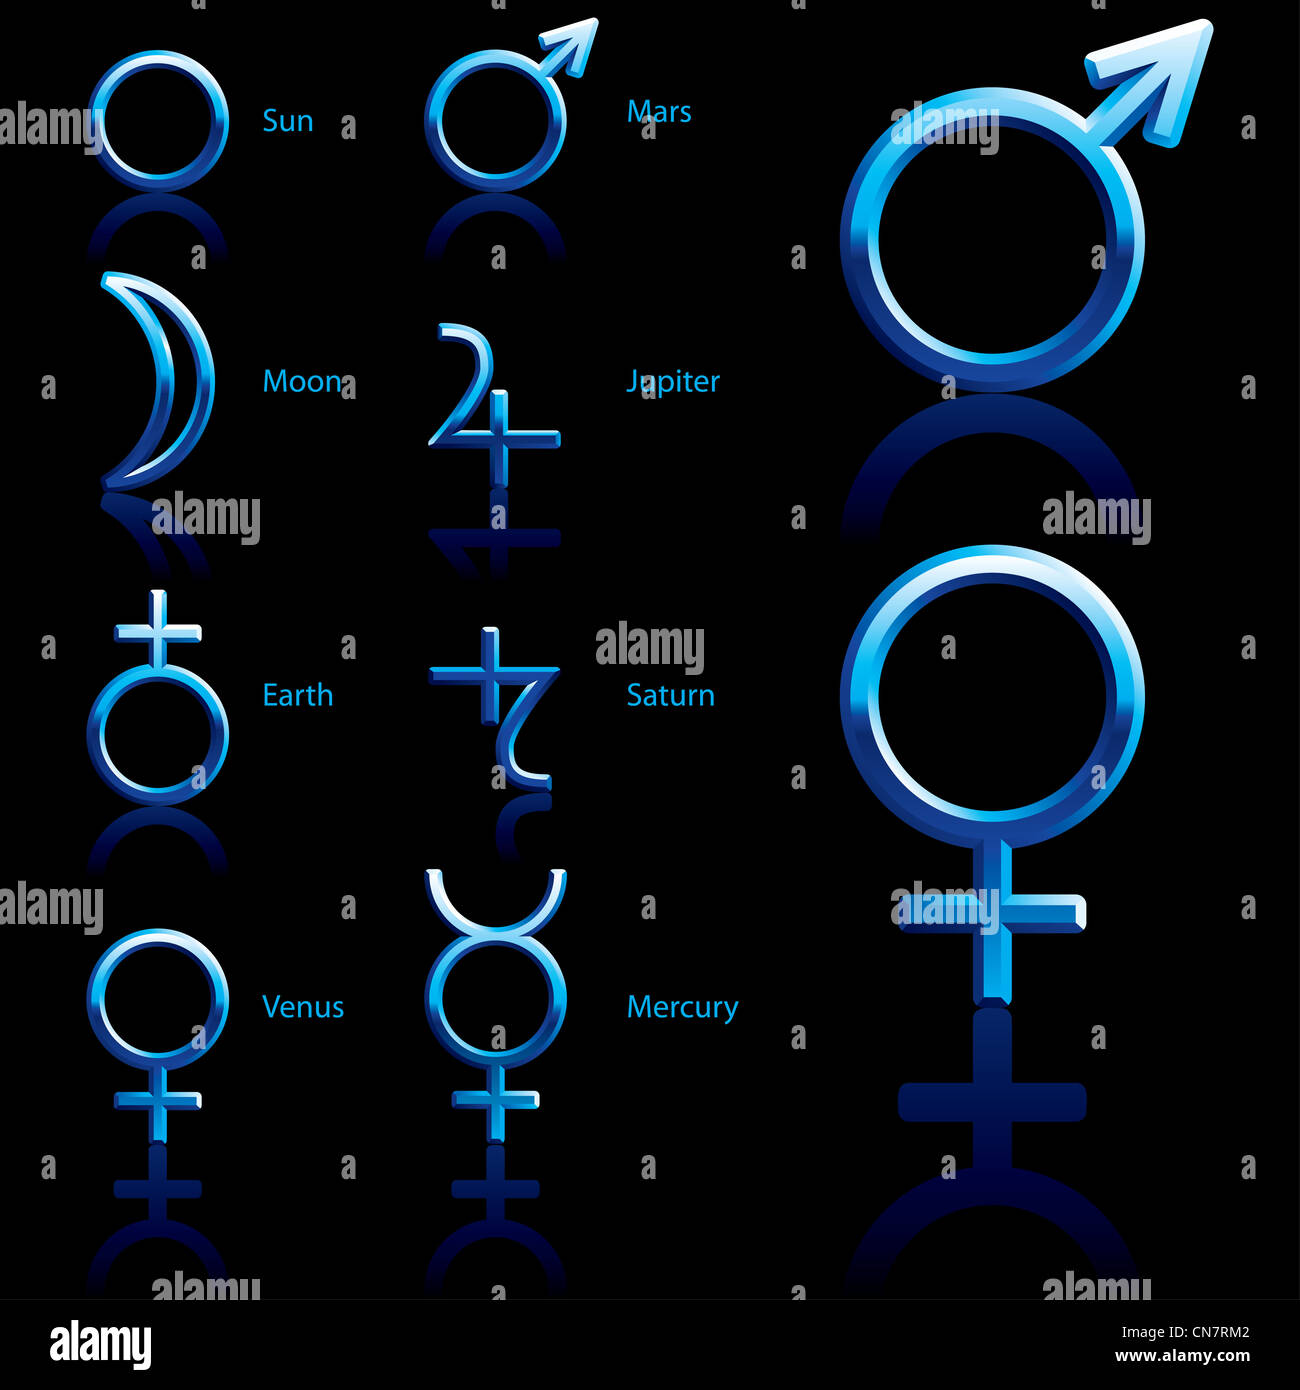 Zodiac And Astrology Symbols Of The Planets Stock Photo 47500770